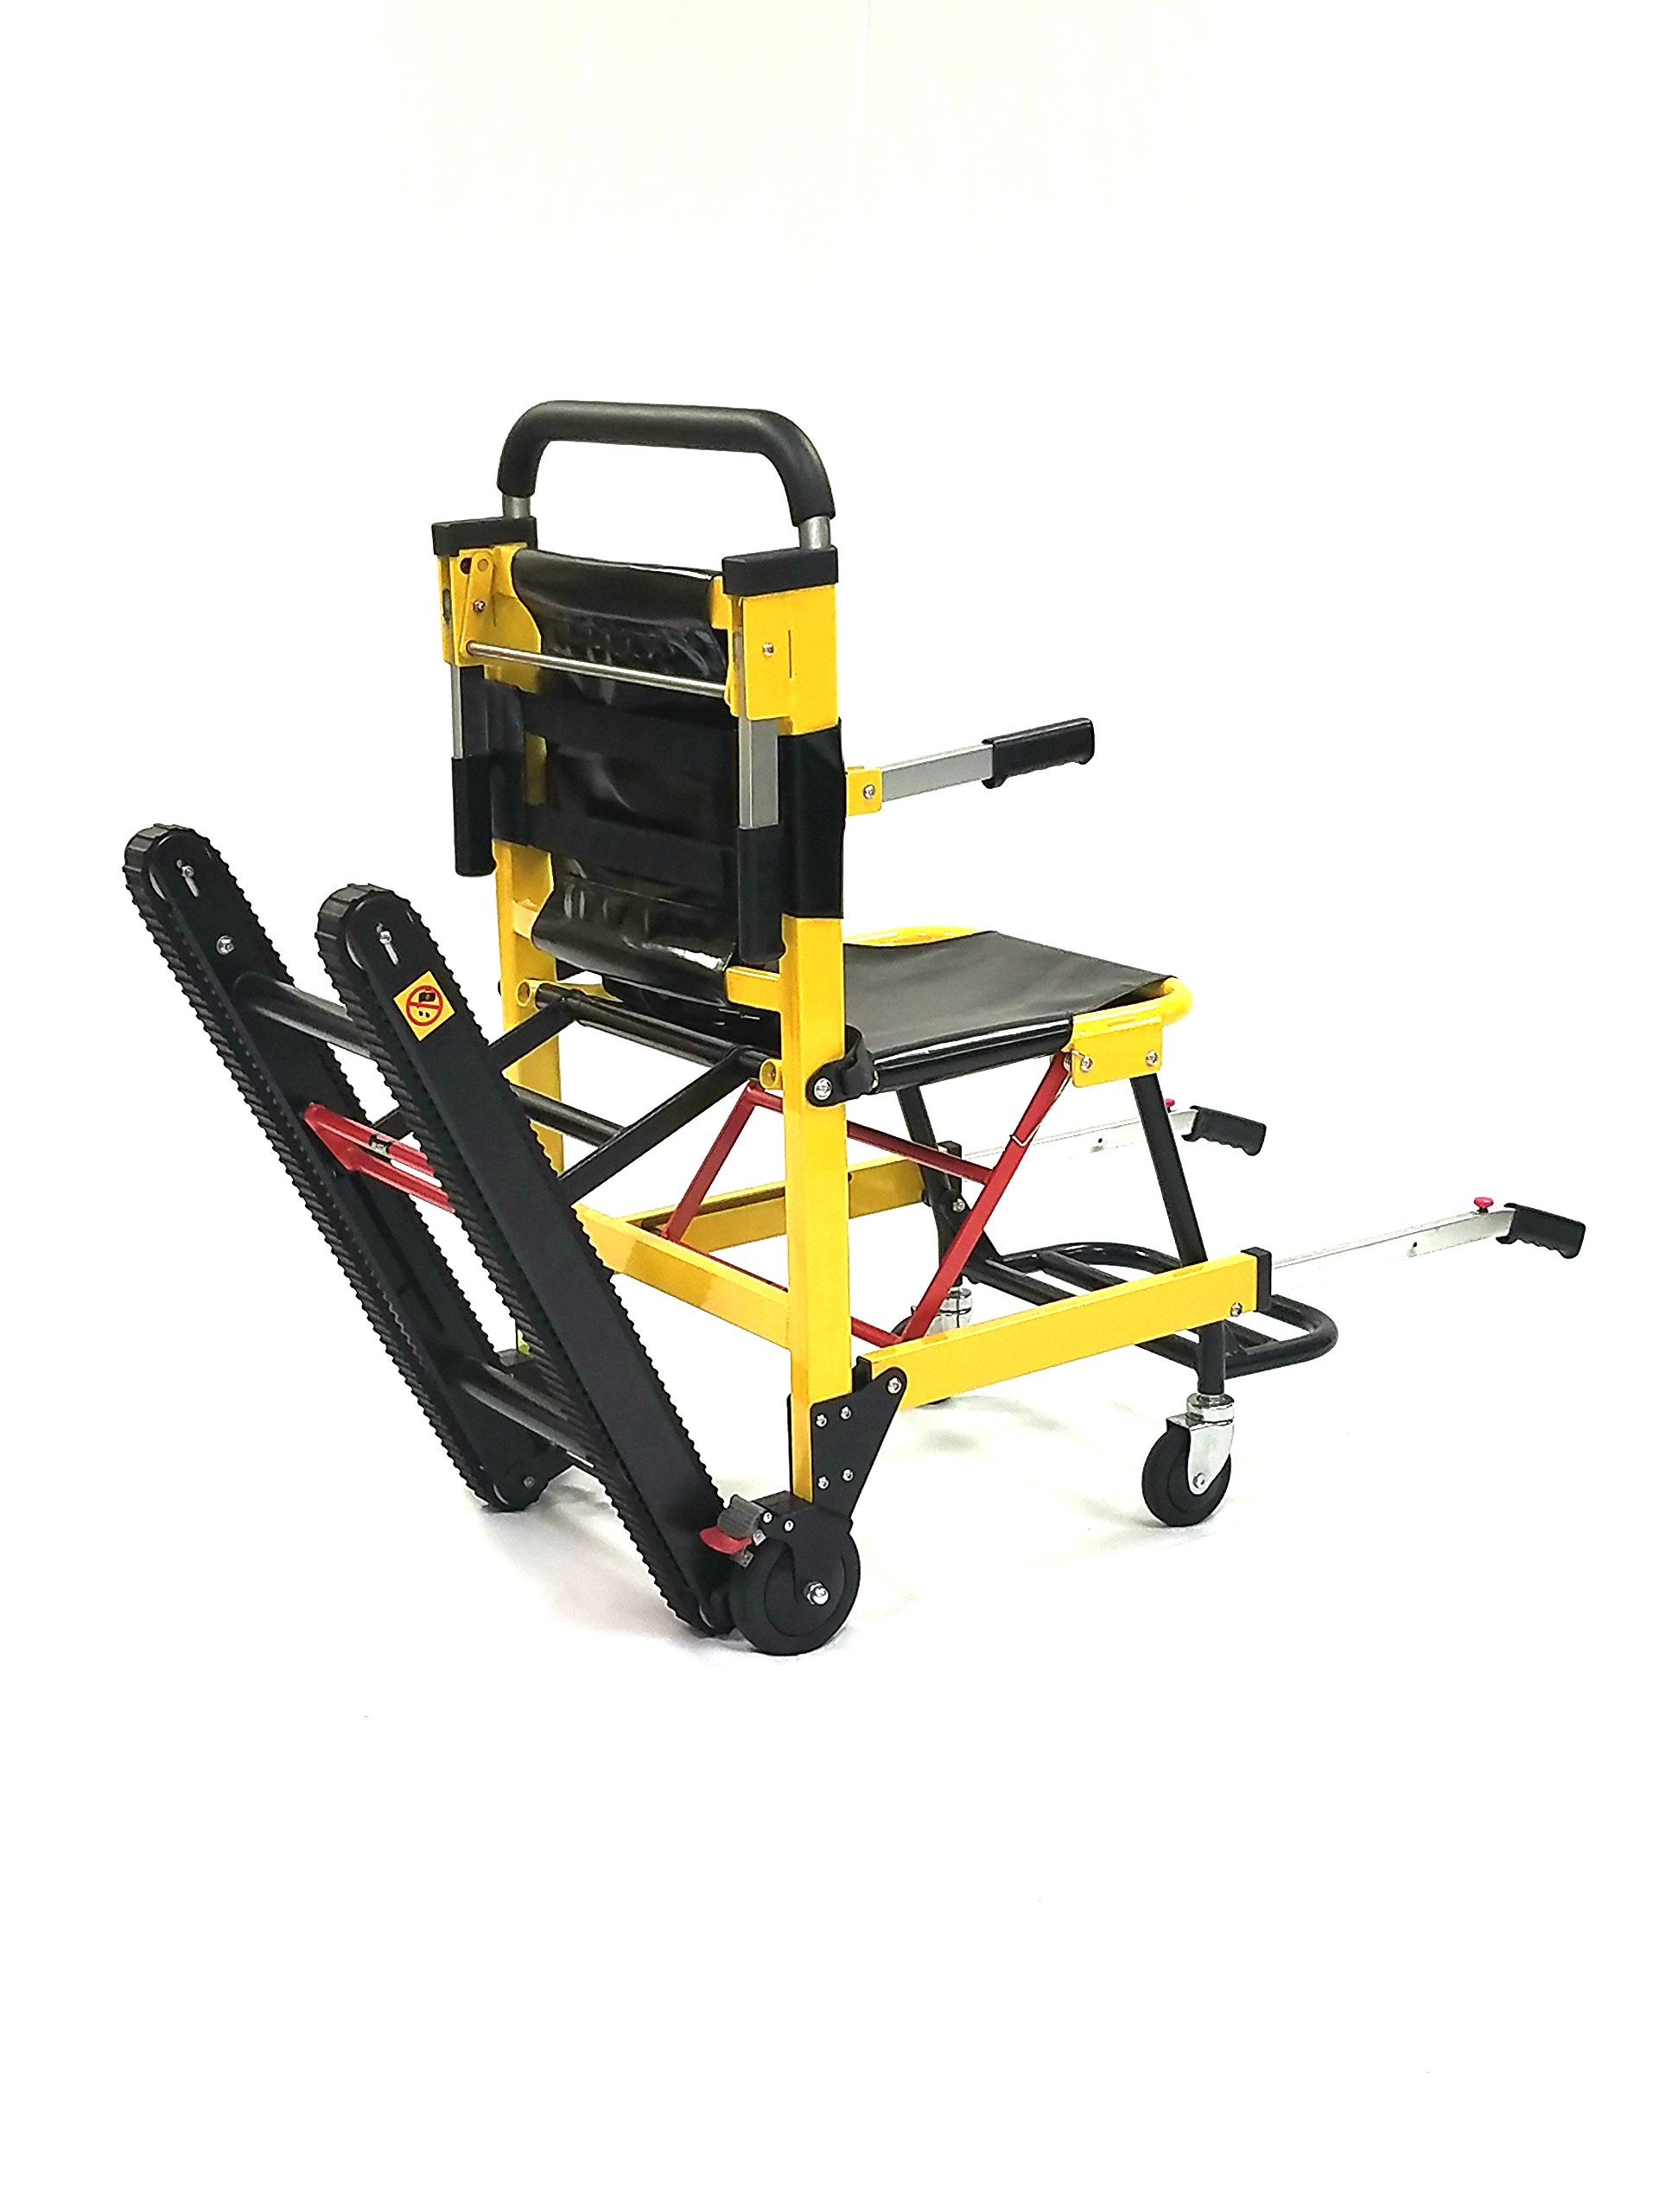 MSEC, MS3C-300TS Aluminum Alloy Emergency Stair Evacuation Chair, Load capacity: 350 lbs.